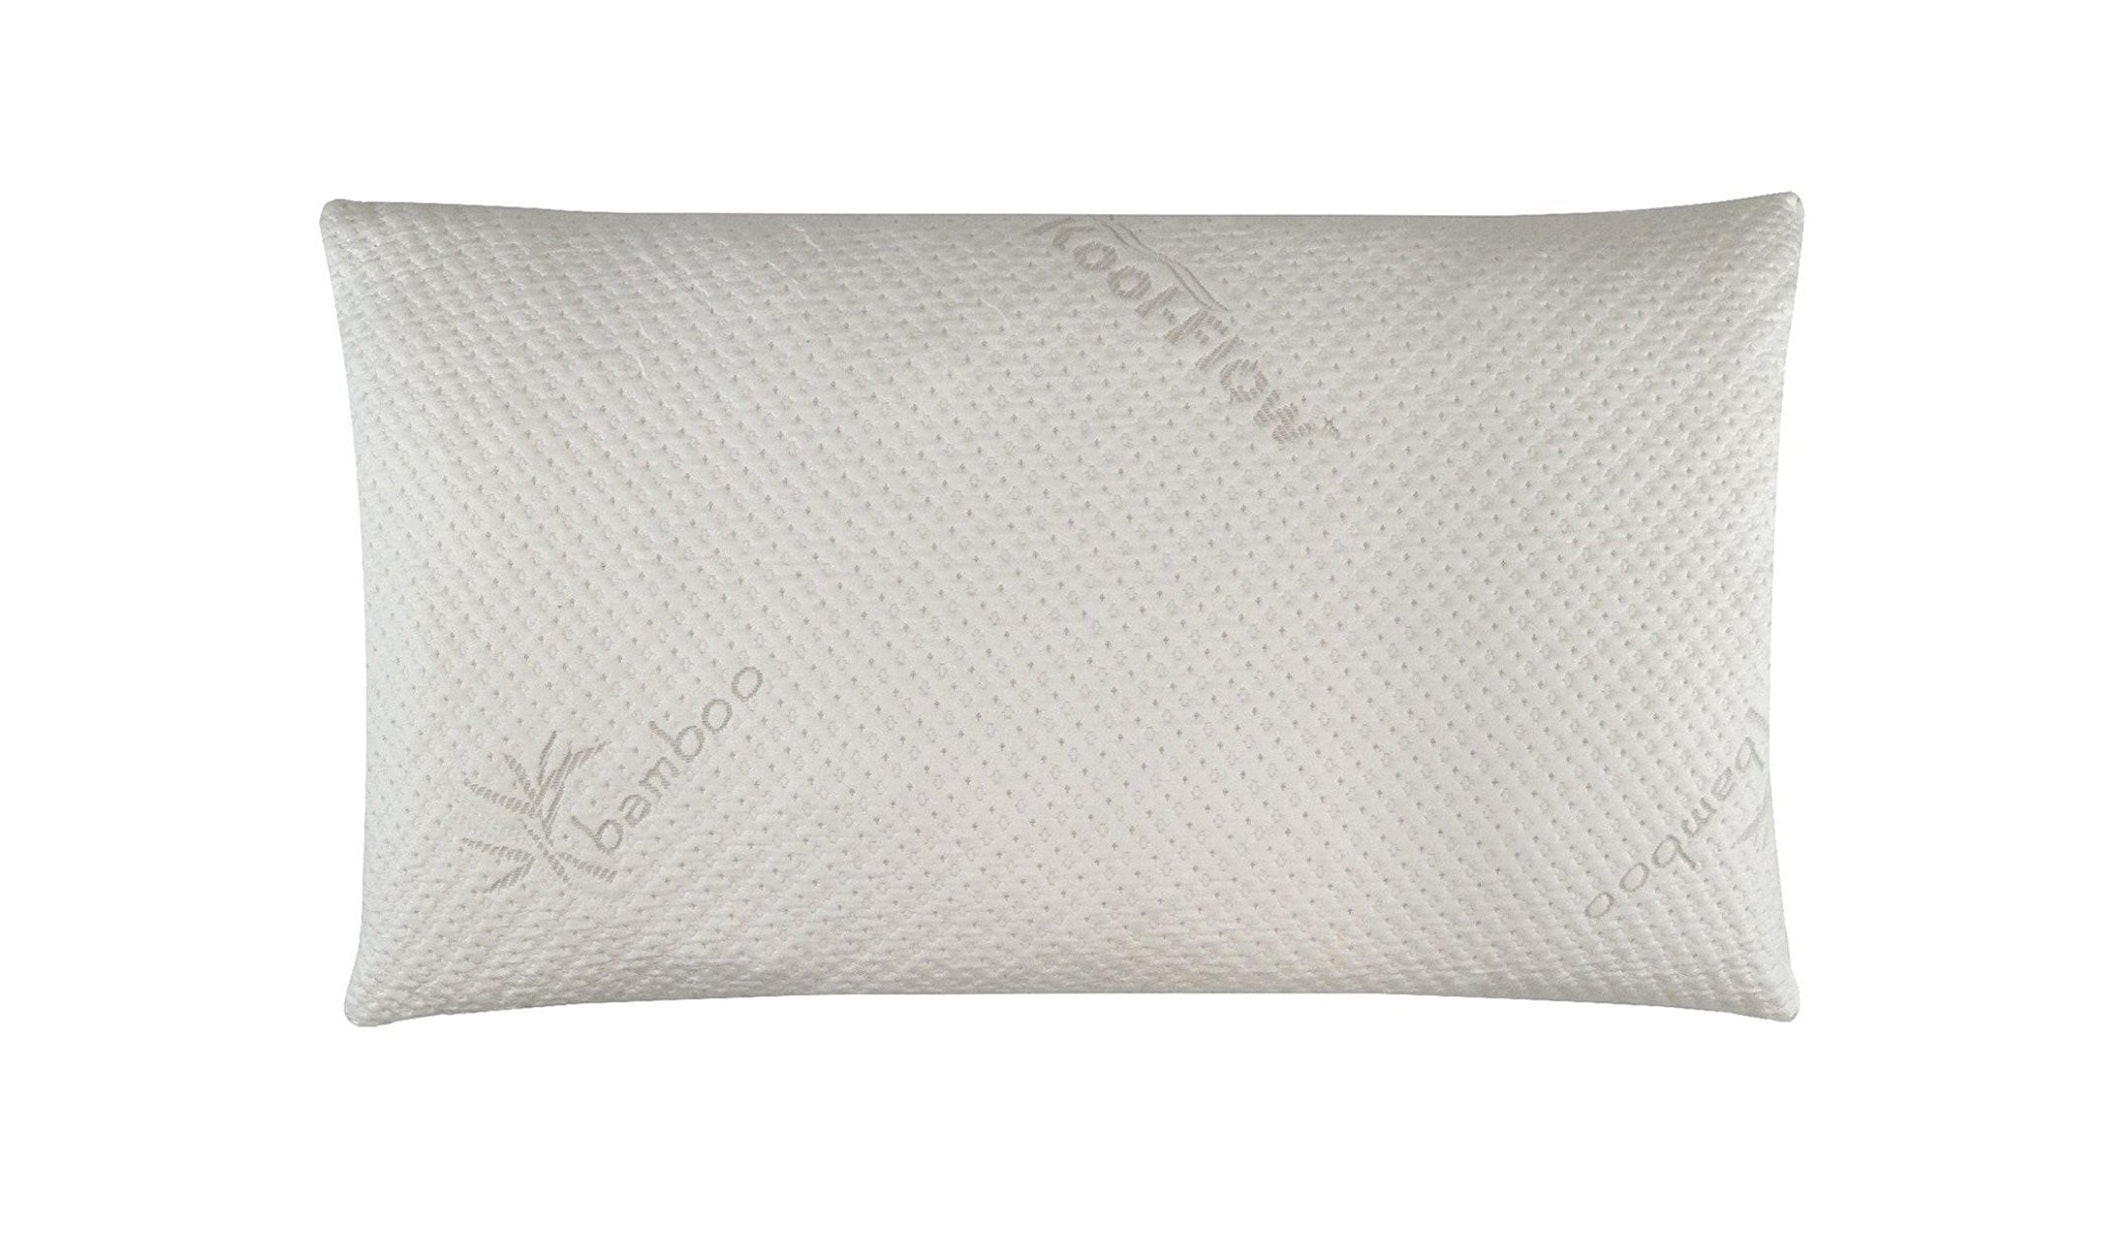 adjustable sizes pillow xtreme with viscosebamboopillow bamboo products thickness comforts